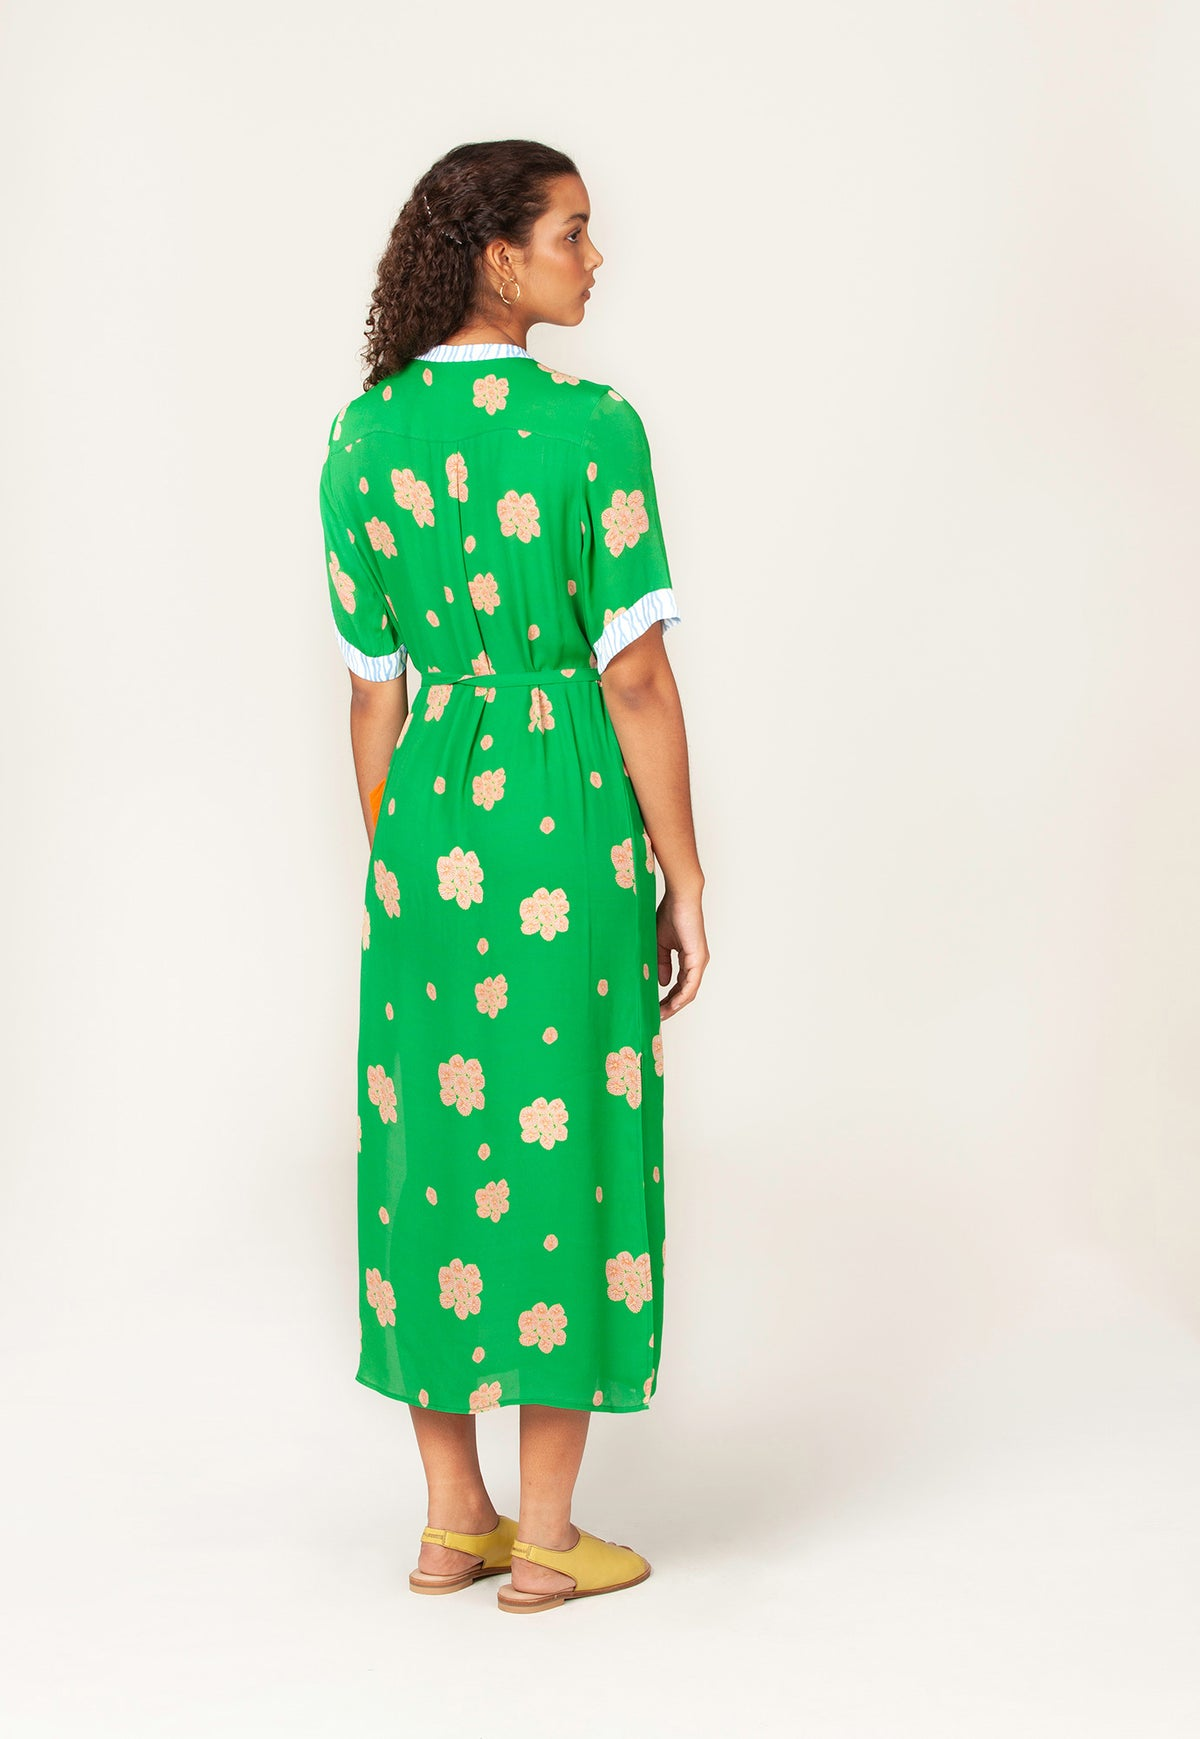 Flinders Dress - Posy Coral Green